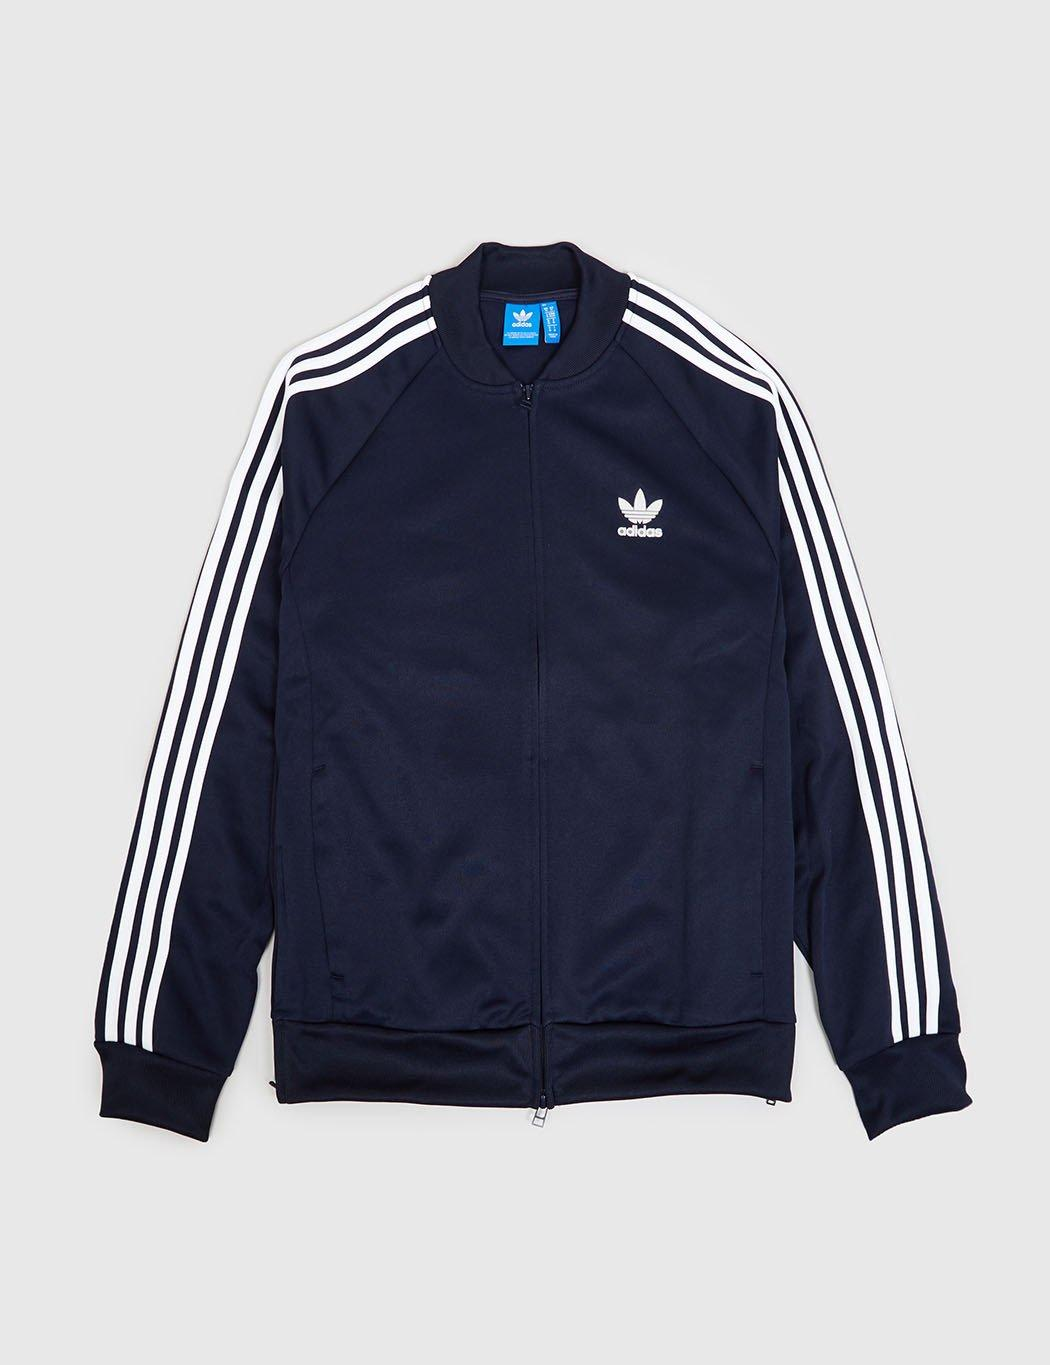 lyst adidas originals adidas superstar track jacket in. Black Bedroom Furniture Sets. Home Design Ideas